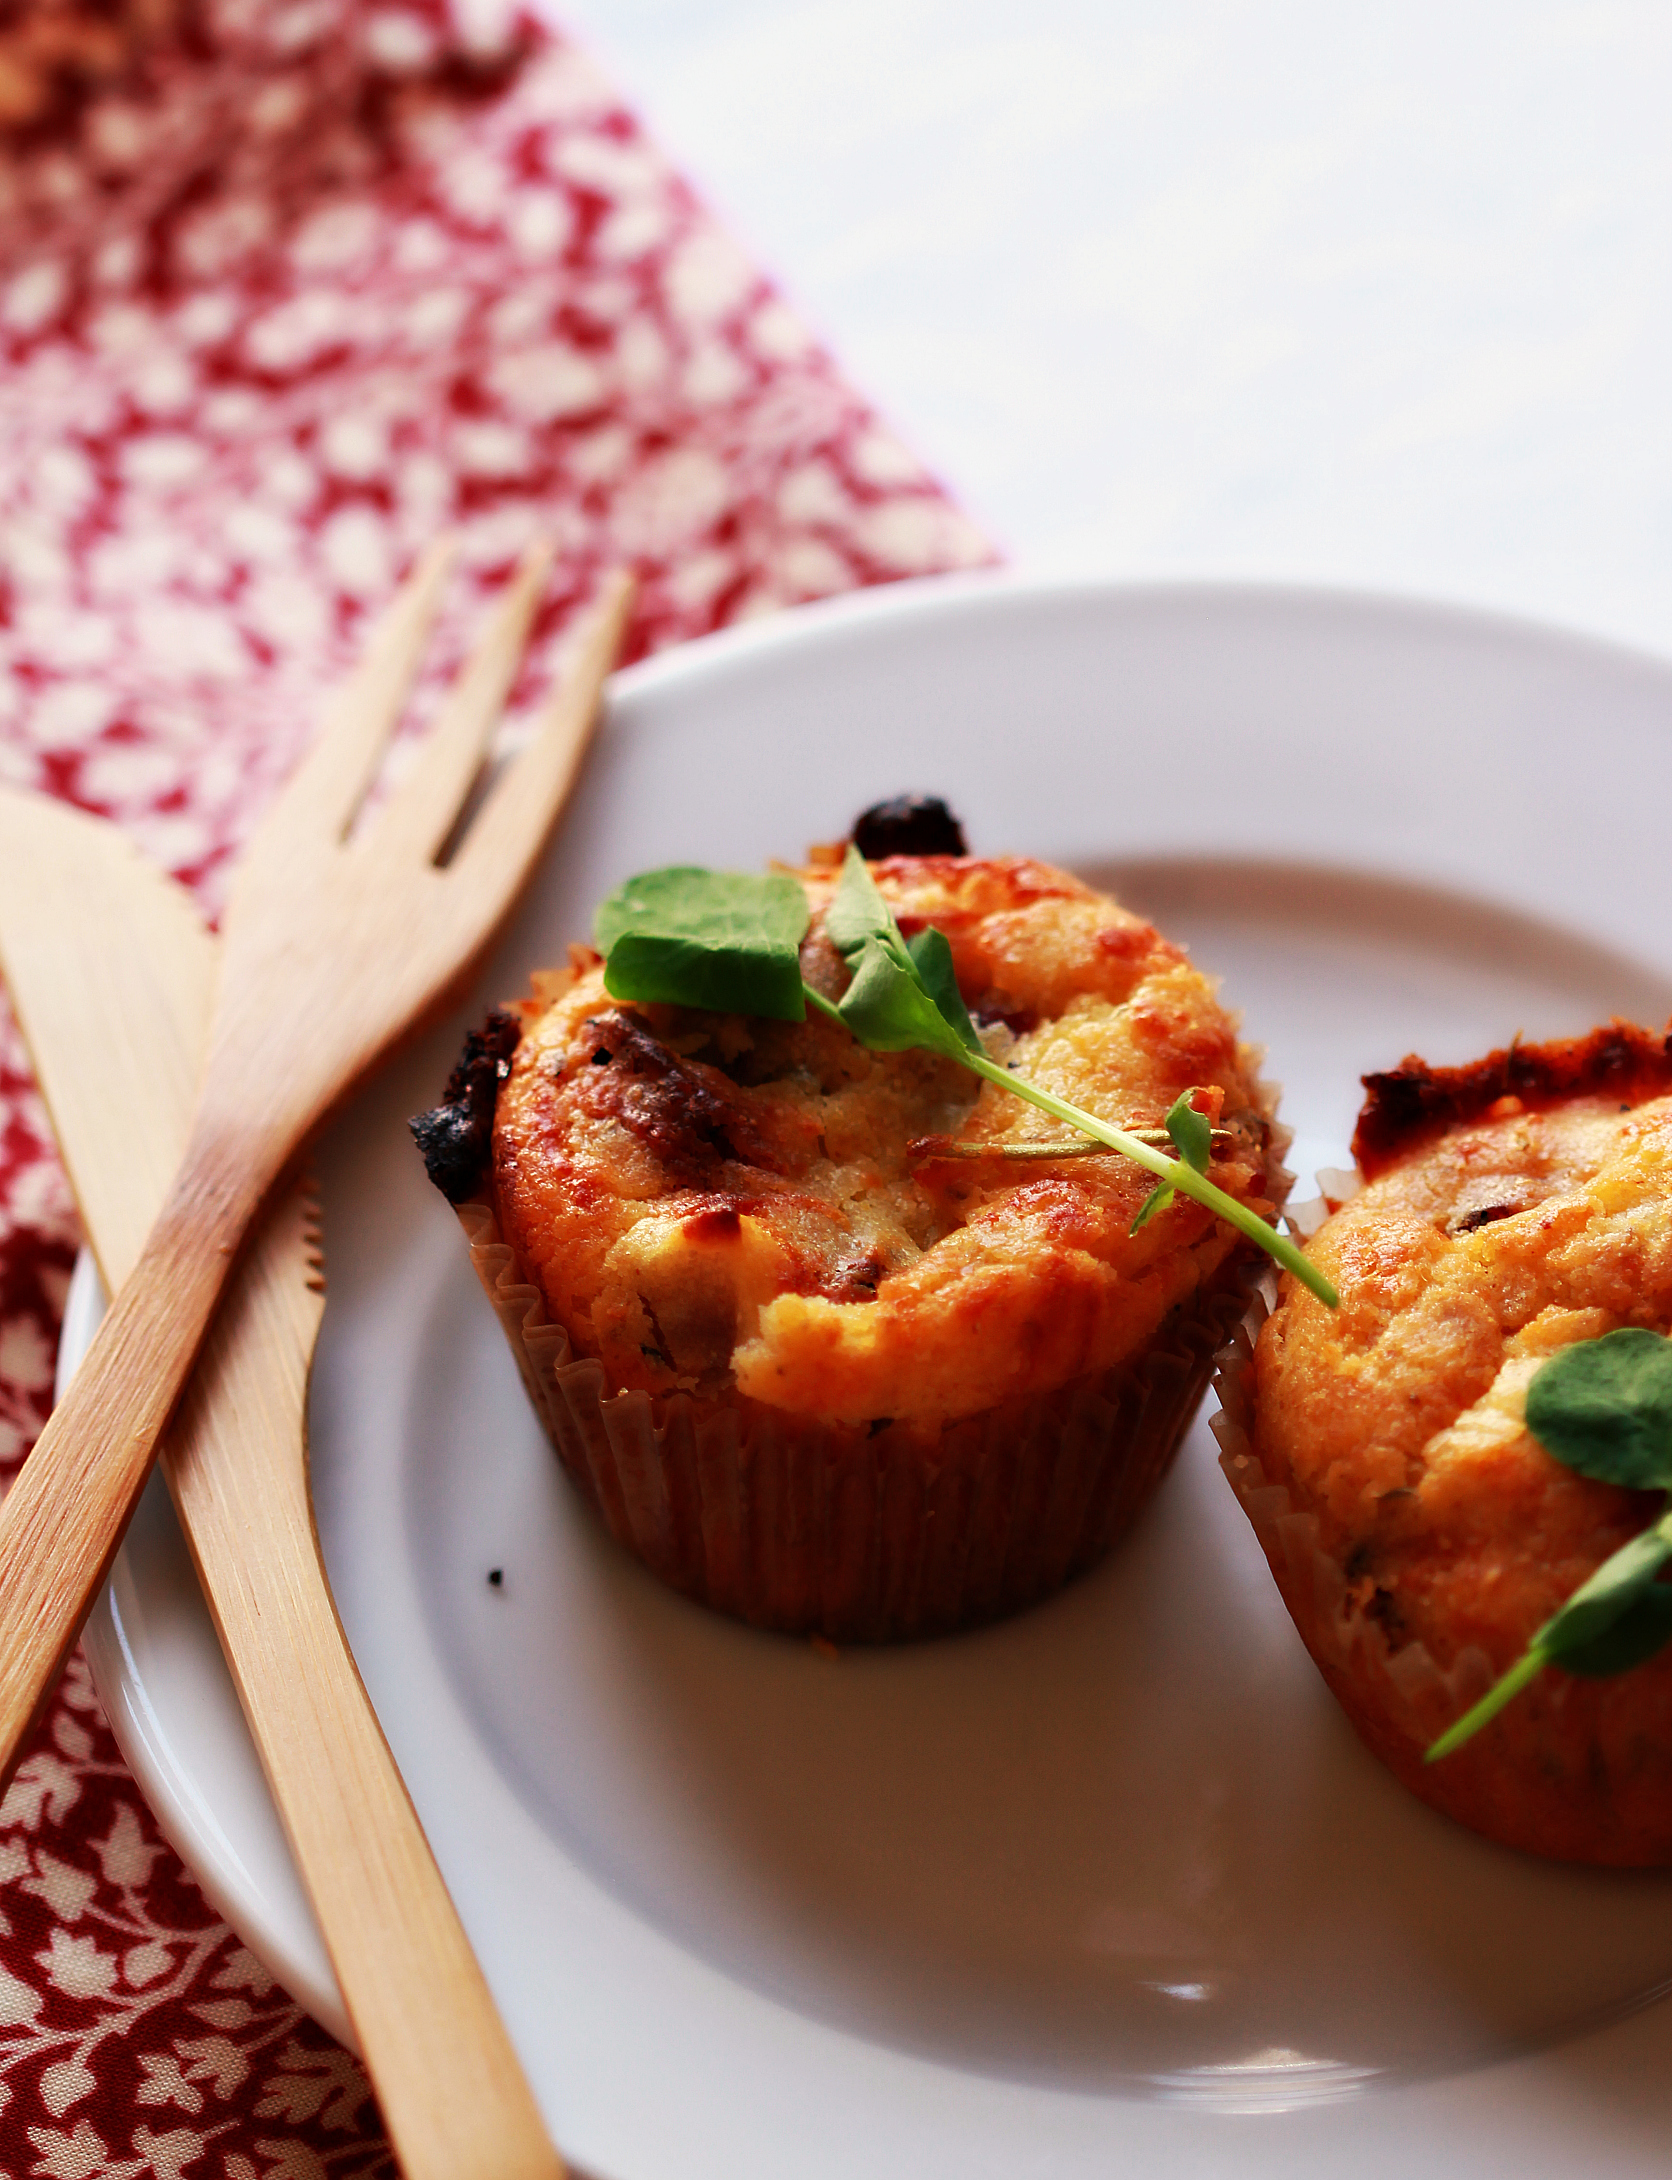 ©Bacon and Cheese Muffins by Dena T Bray